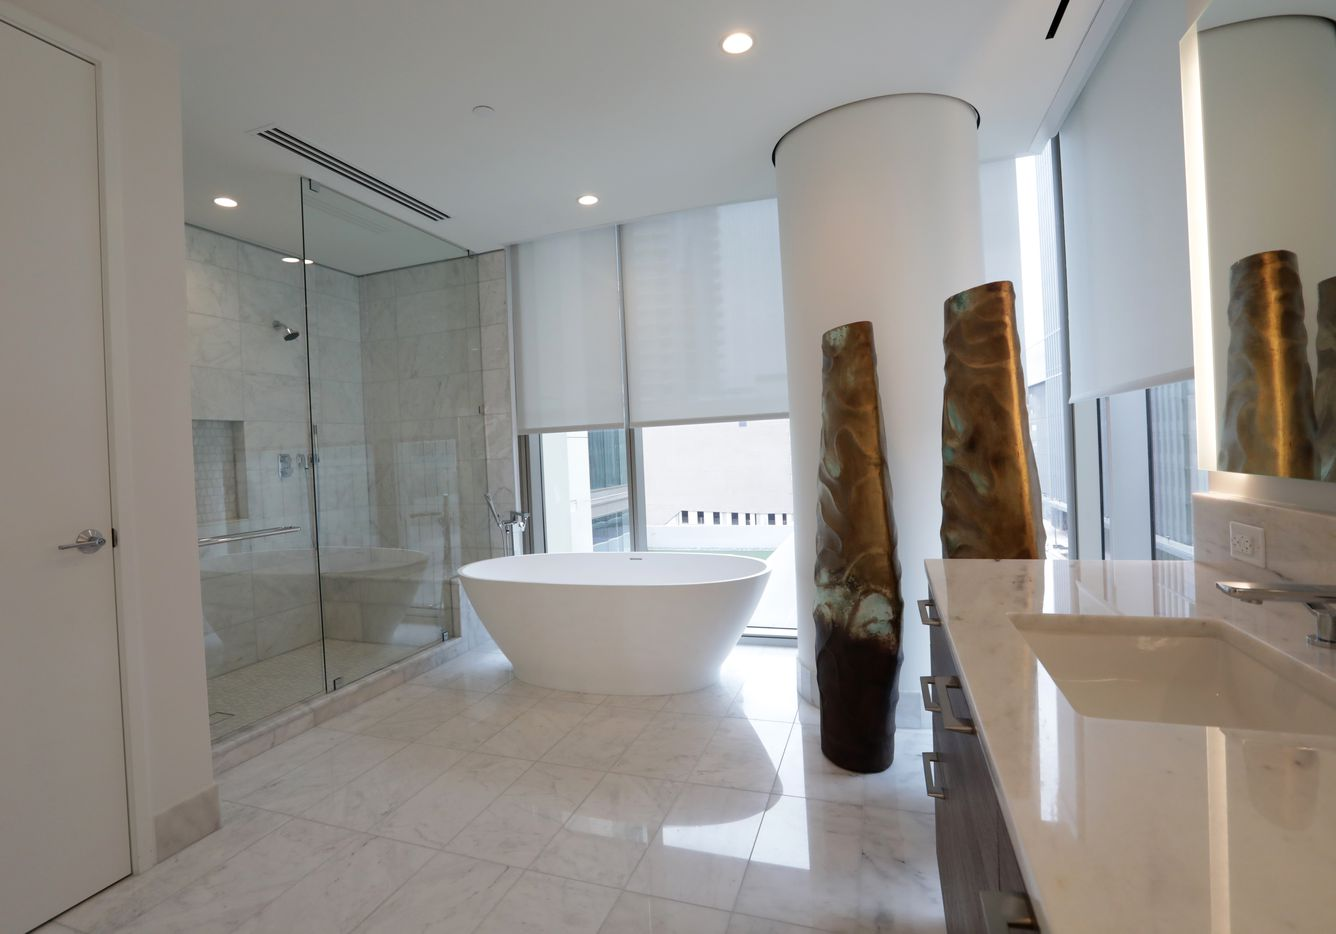 A master bathroom at Windrose Tower in Plano. (Jason Janik/Special Contributor)